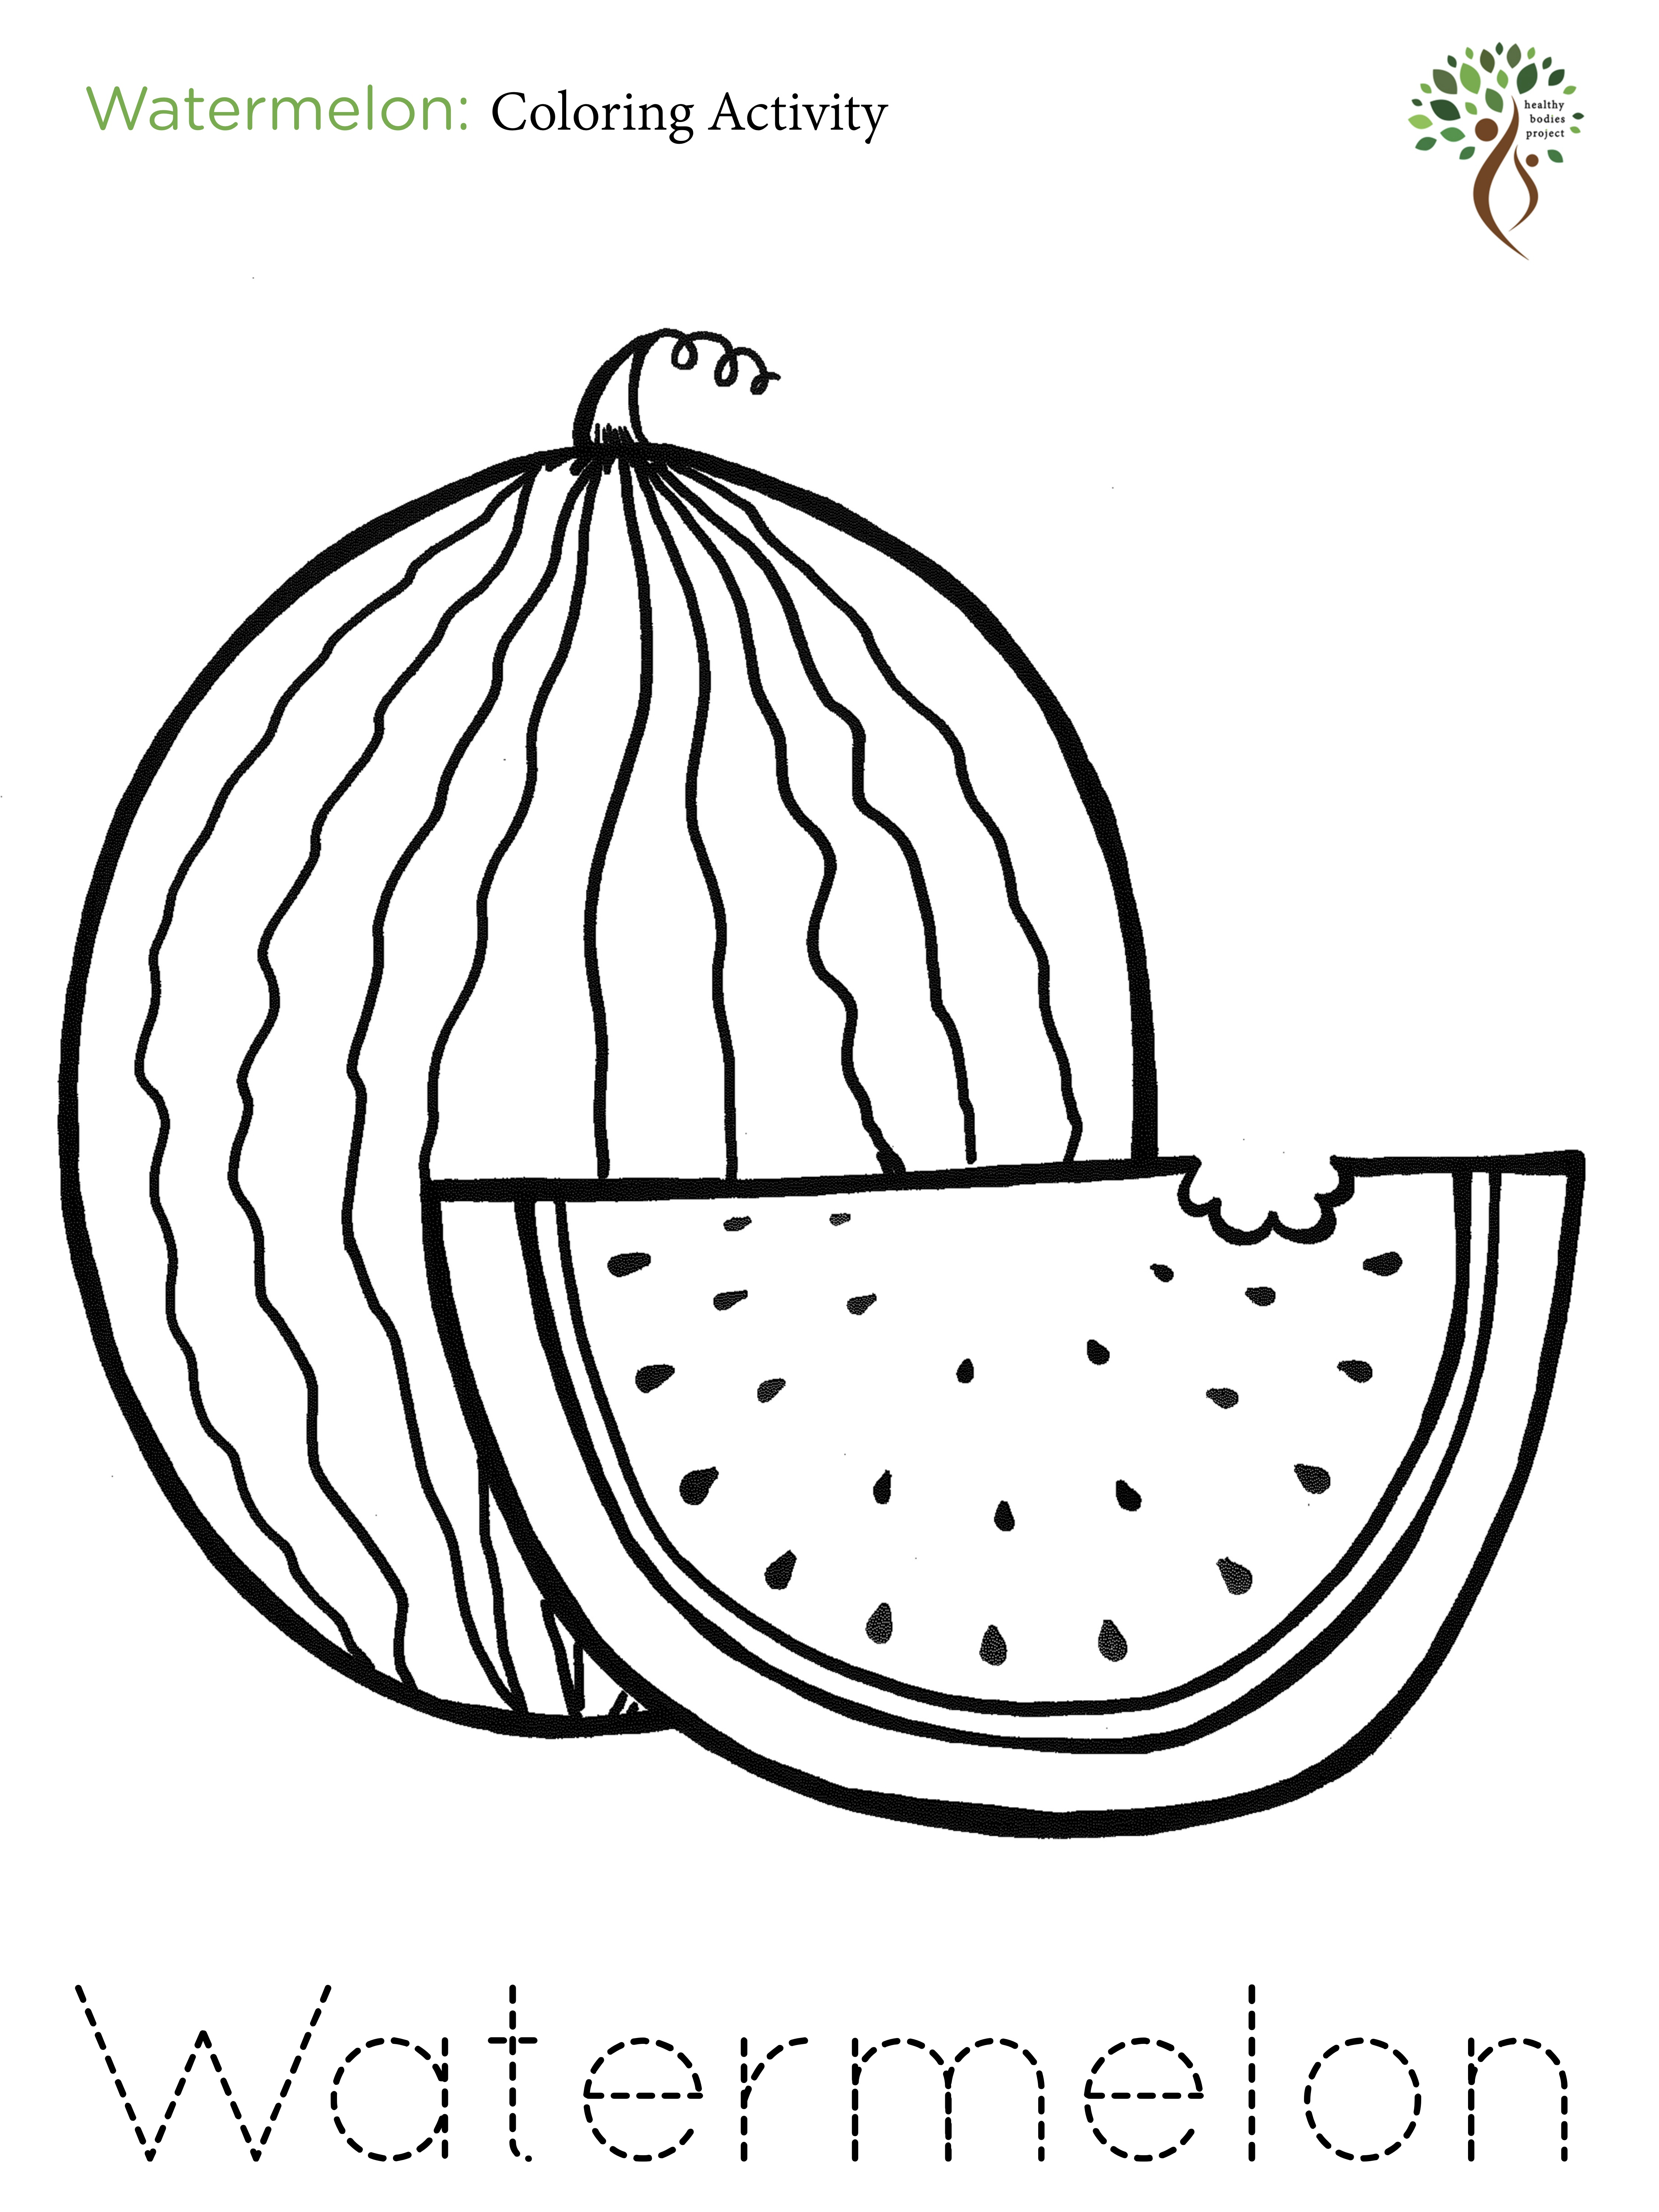 watermelon coloring images a z coloring activities healthy bodies project images watermelon coloring